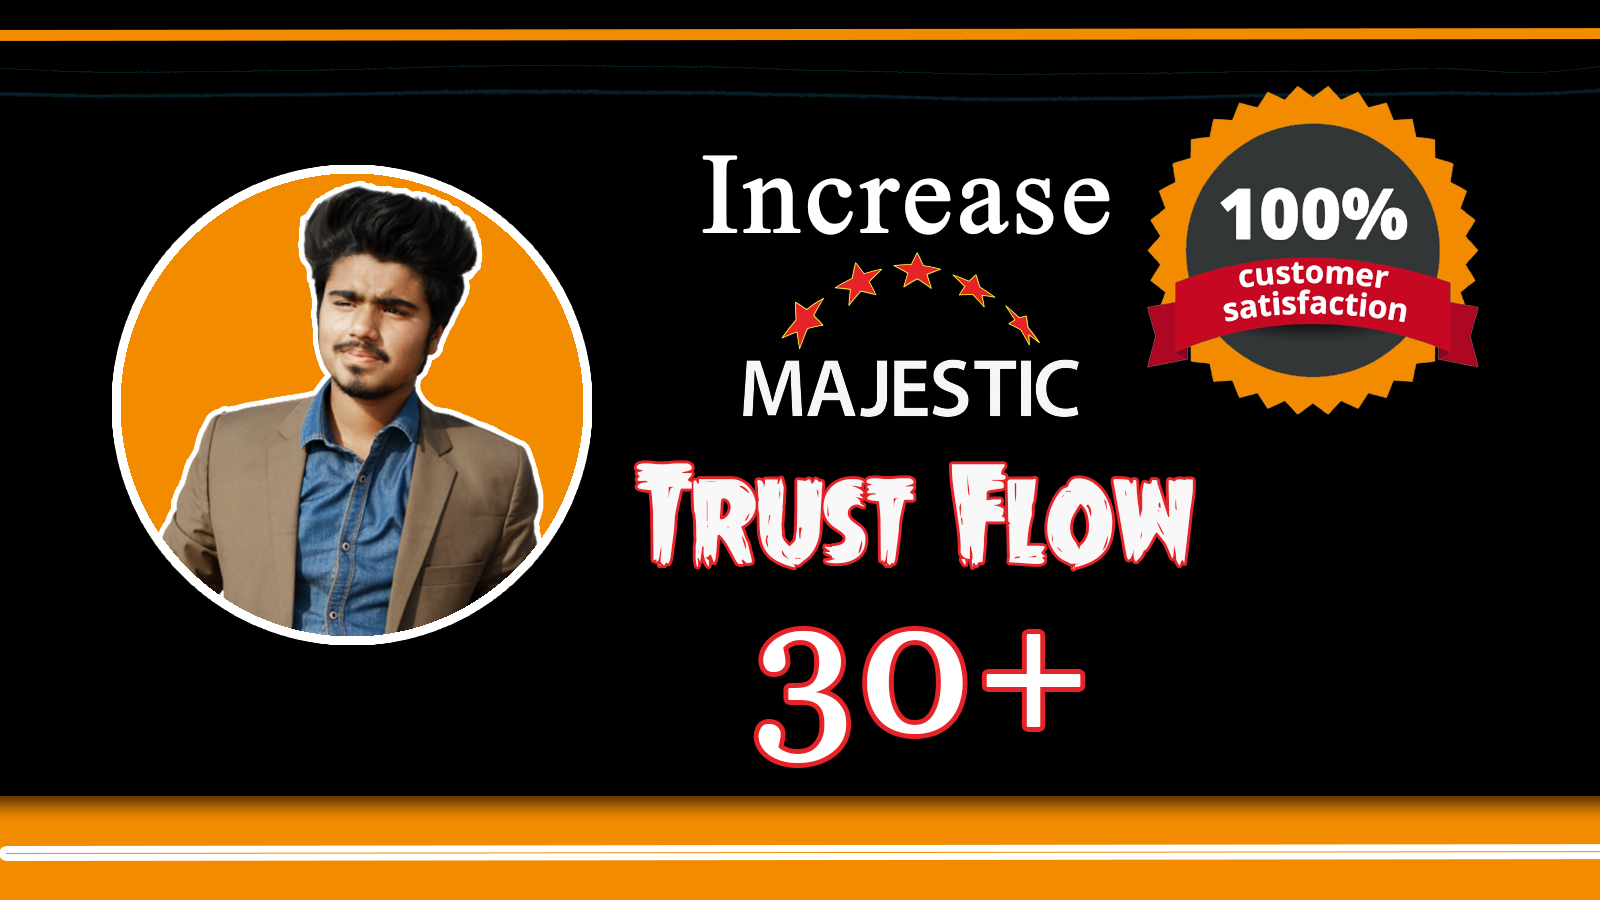 increase majestic trust flow tf 30 plus with best strategy